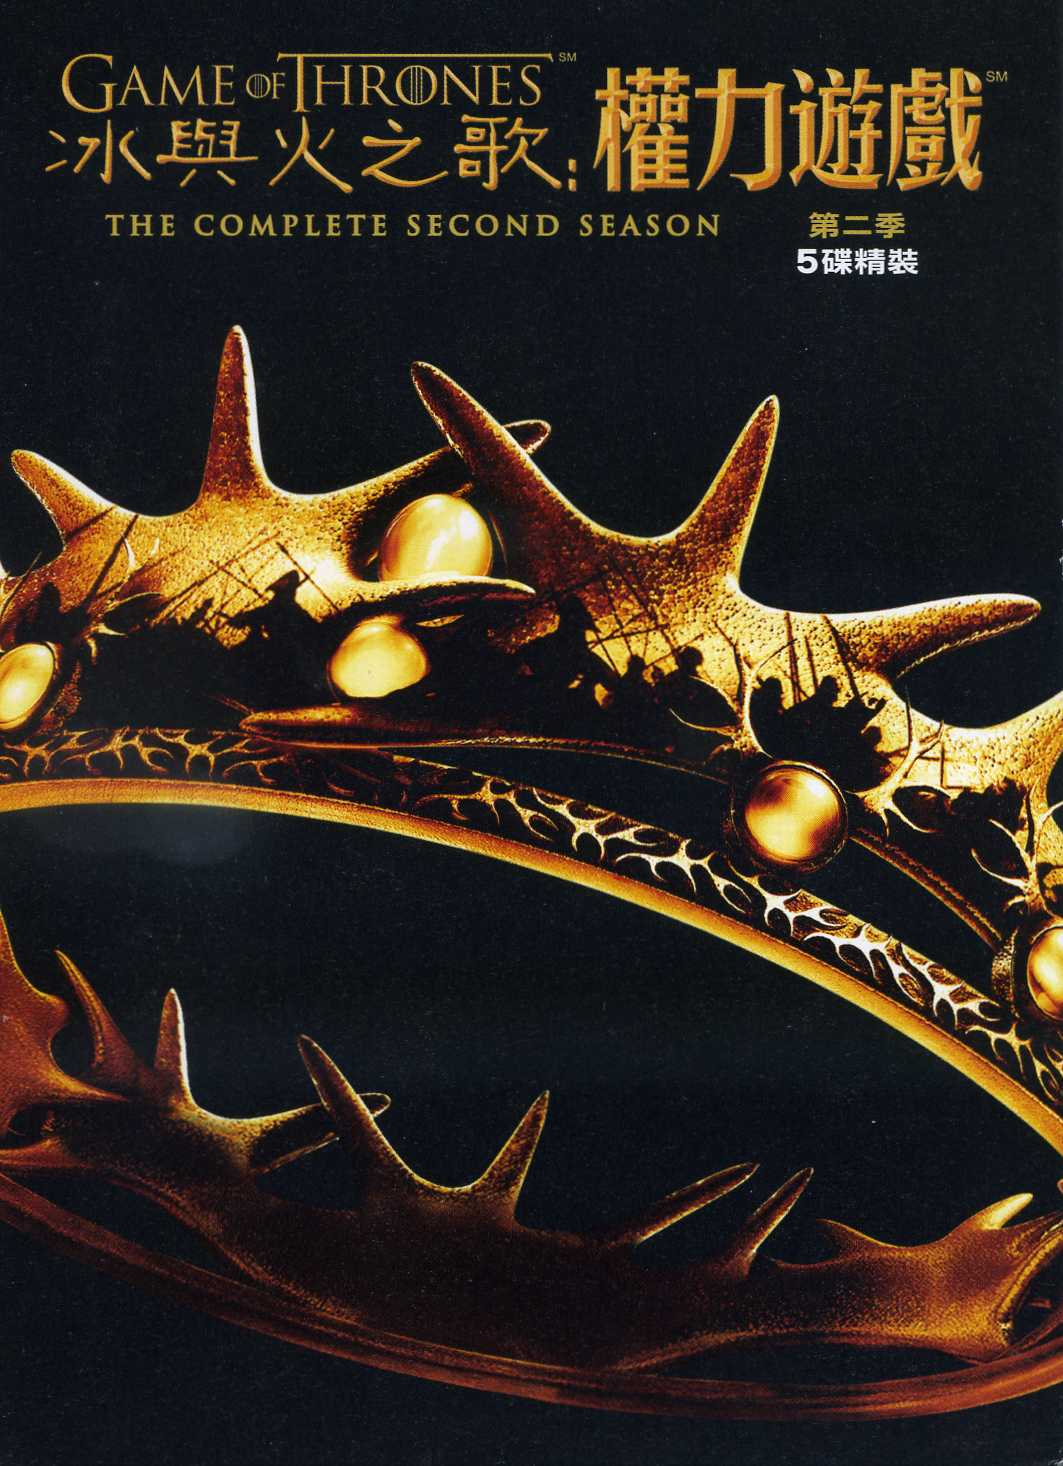 冰與火之歌 權力遊戲. Game of thrones: the complete second season